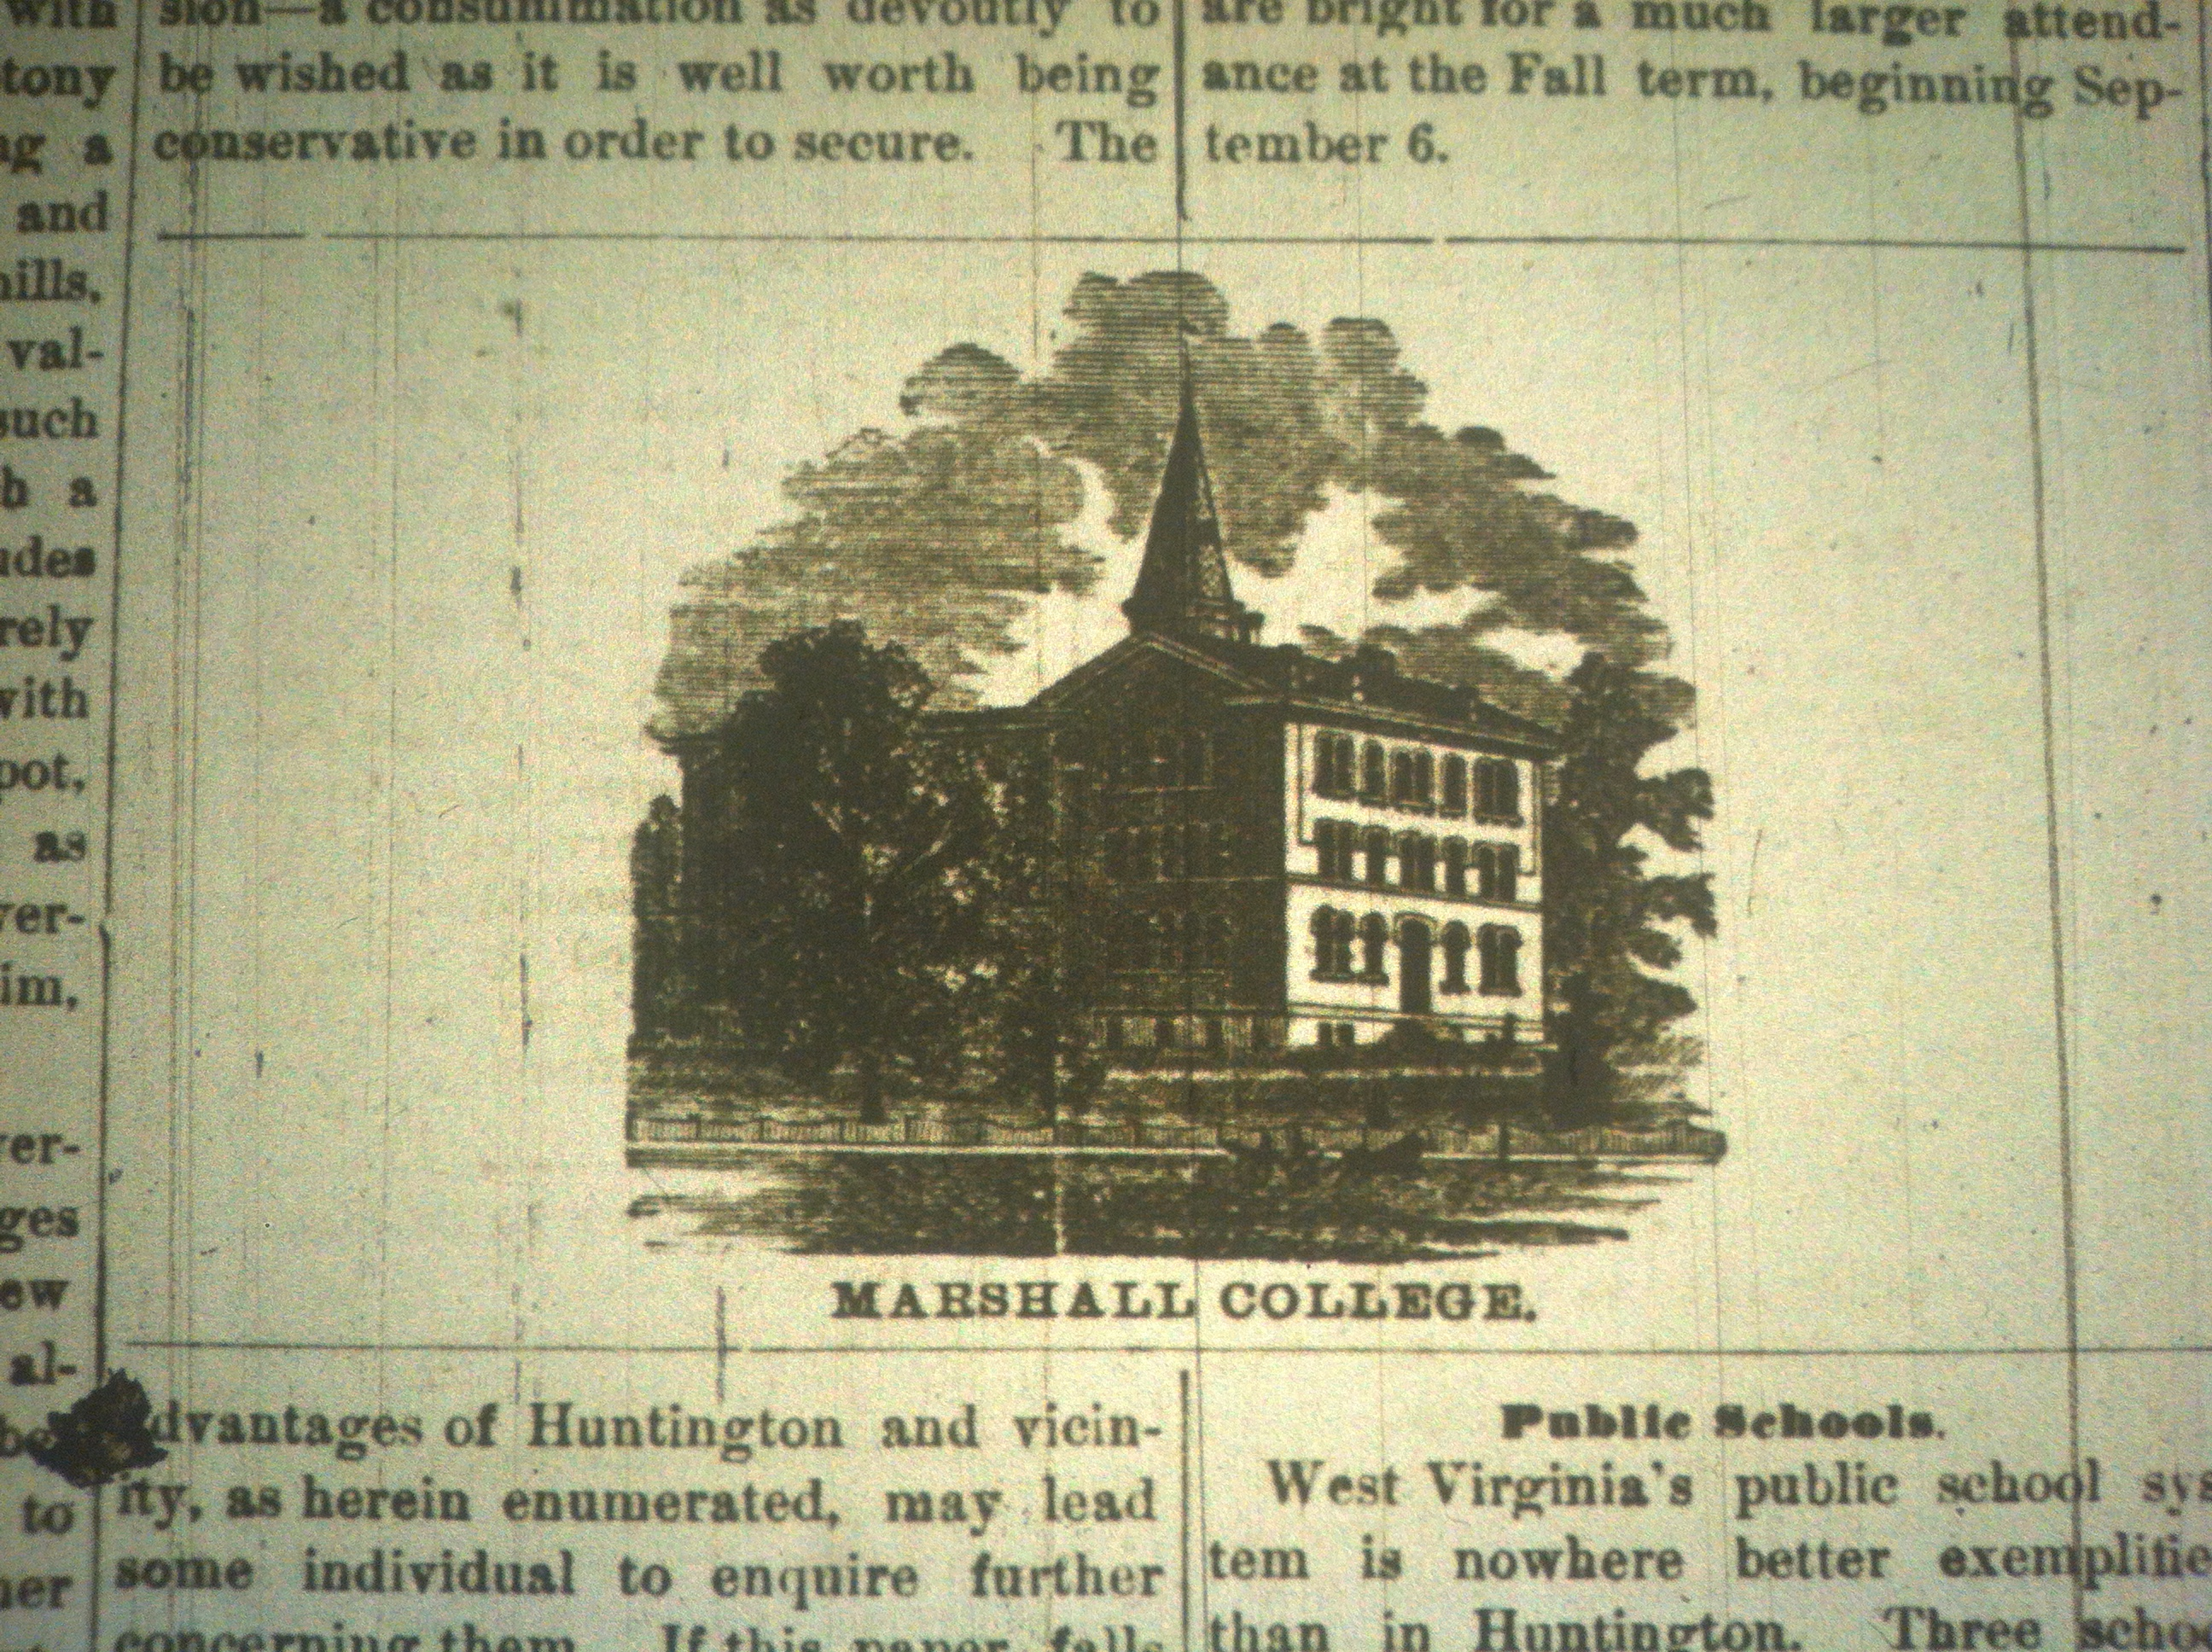 Marshall College Photo HuA 06.18.1887.JPG